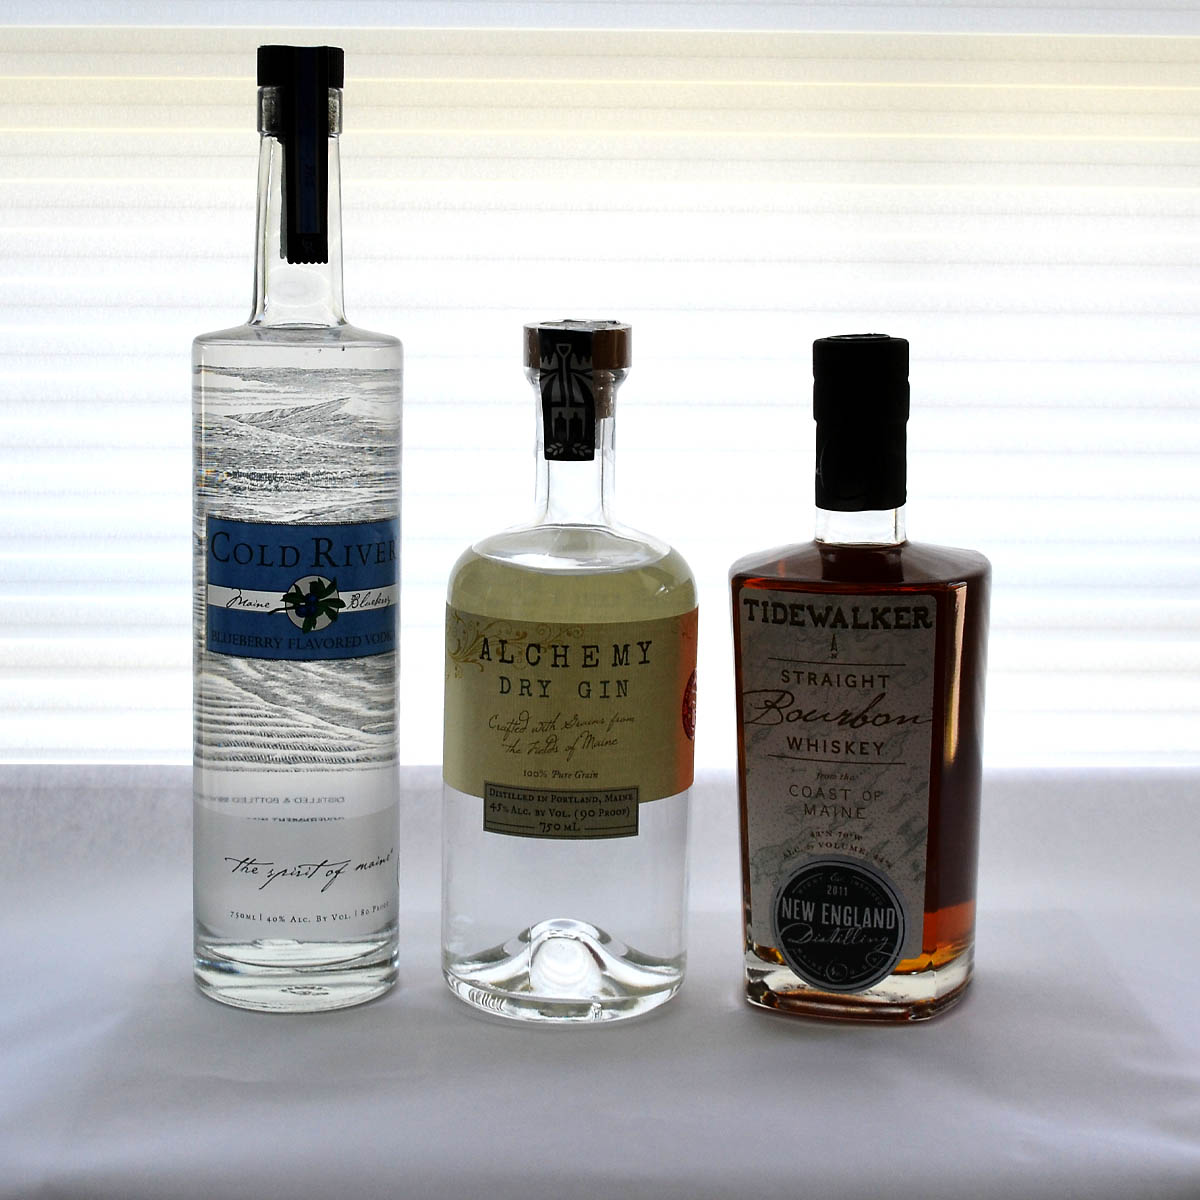 """Taste of Maine Booze Basket - Maine is becoming known for its craft distilleries, and this unique basket features all you need to add a taste of Maine to your bar. Say """"cheers"""" as you raise a glass with either Cold River Blueberry Vodka, Alchemy Dry Gin, or Tidewalker Bourgon Whiskey.Retail Value: $122.00"""